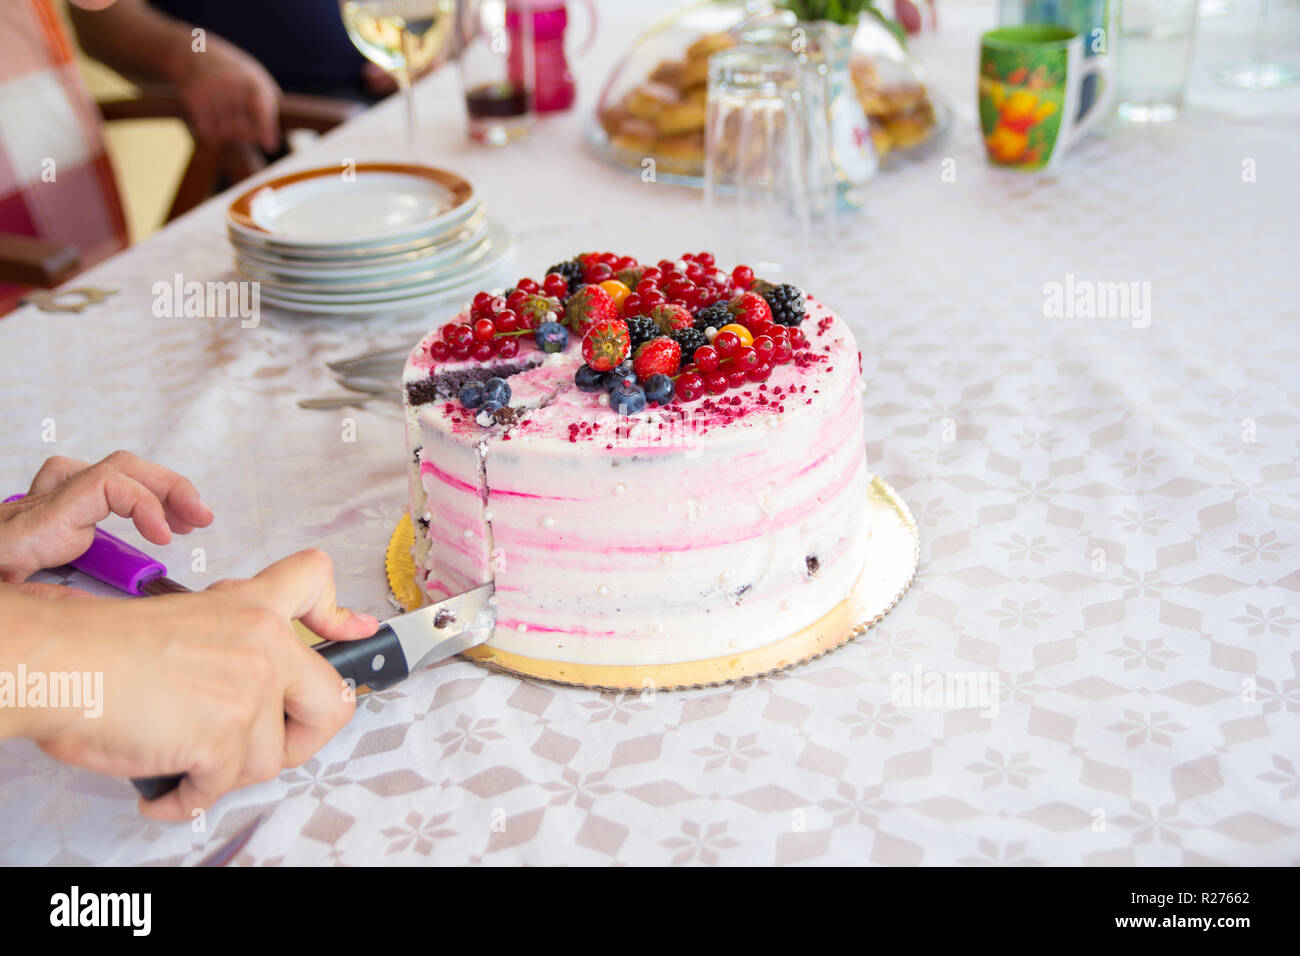 Hand With Knife Slicing Birthday Cake